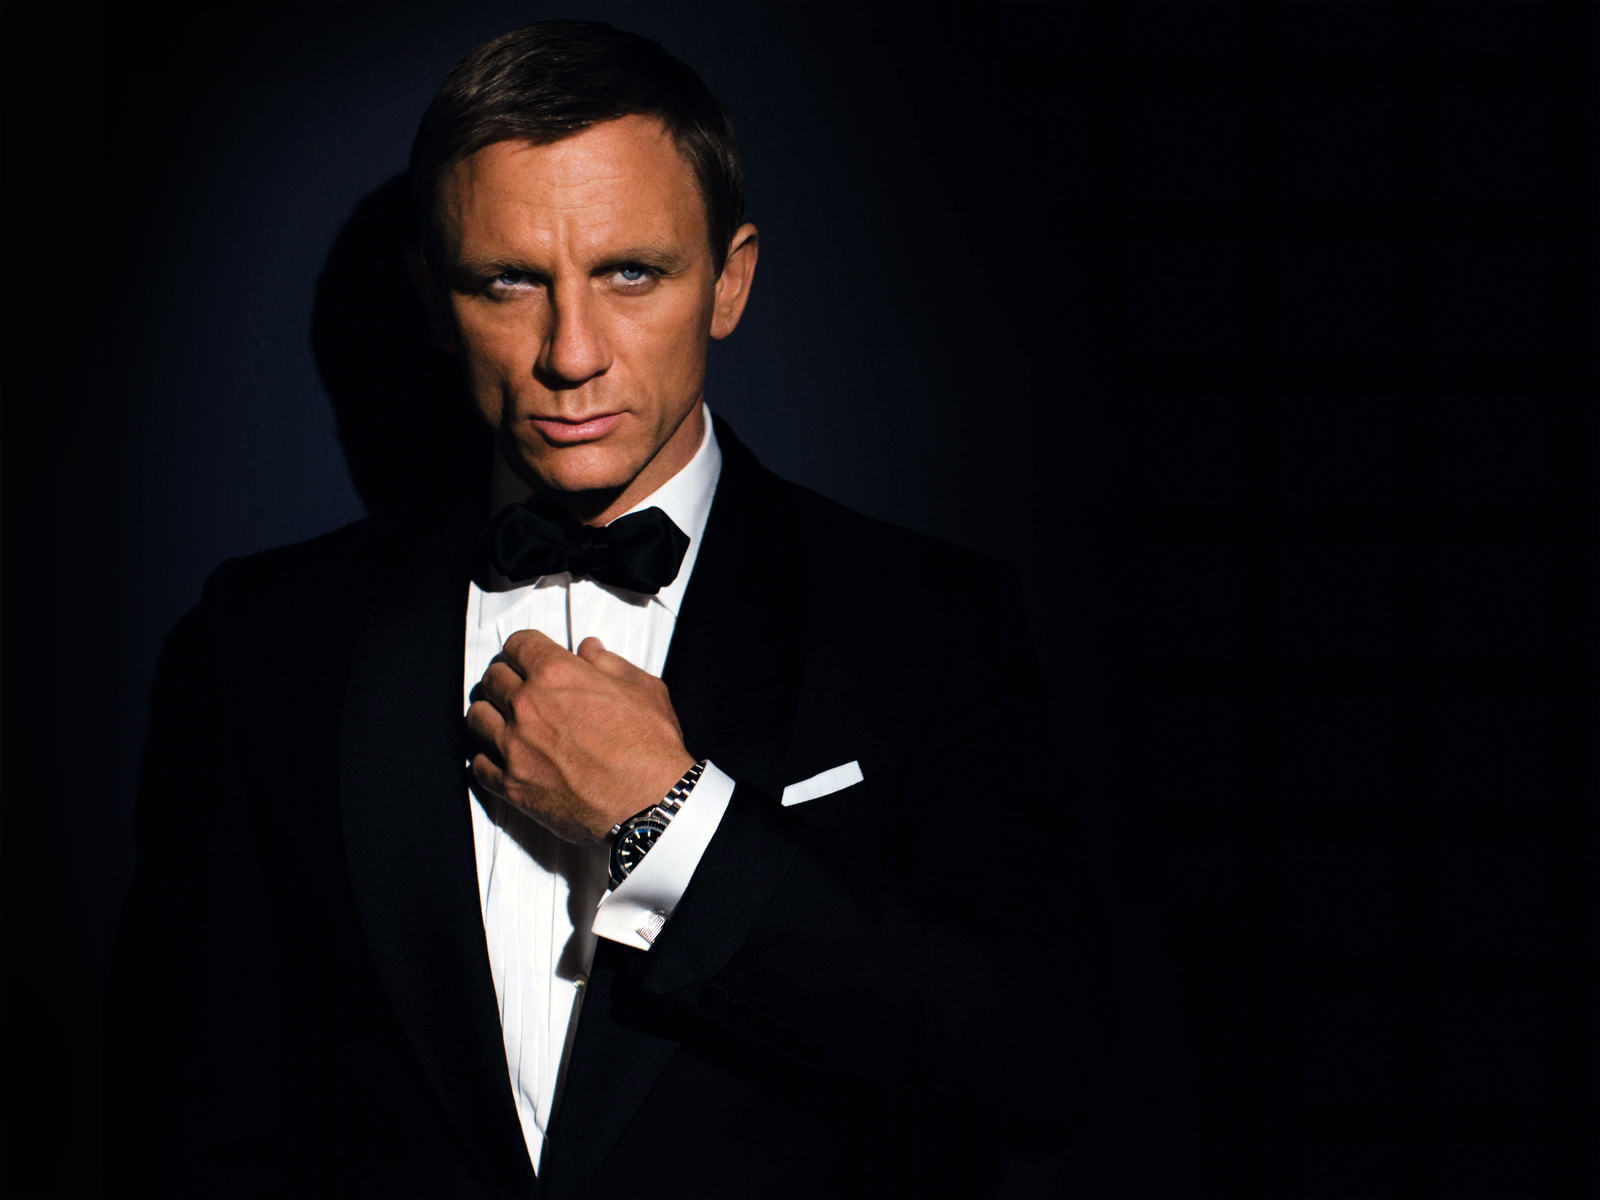 http://2.bp.blogspot.com/-GdiwXXZobOs/UAZifuuXvII/AAAAAAAAC6A/m2YLuqWDK6M/s1600/James_Bond_with_QOS_Omega_Watch_HD_Desktop_Wallpaper-HidefWall.Blogspot.Com.jpg